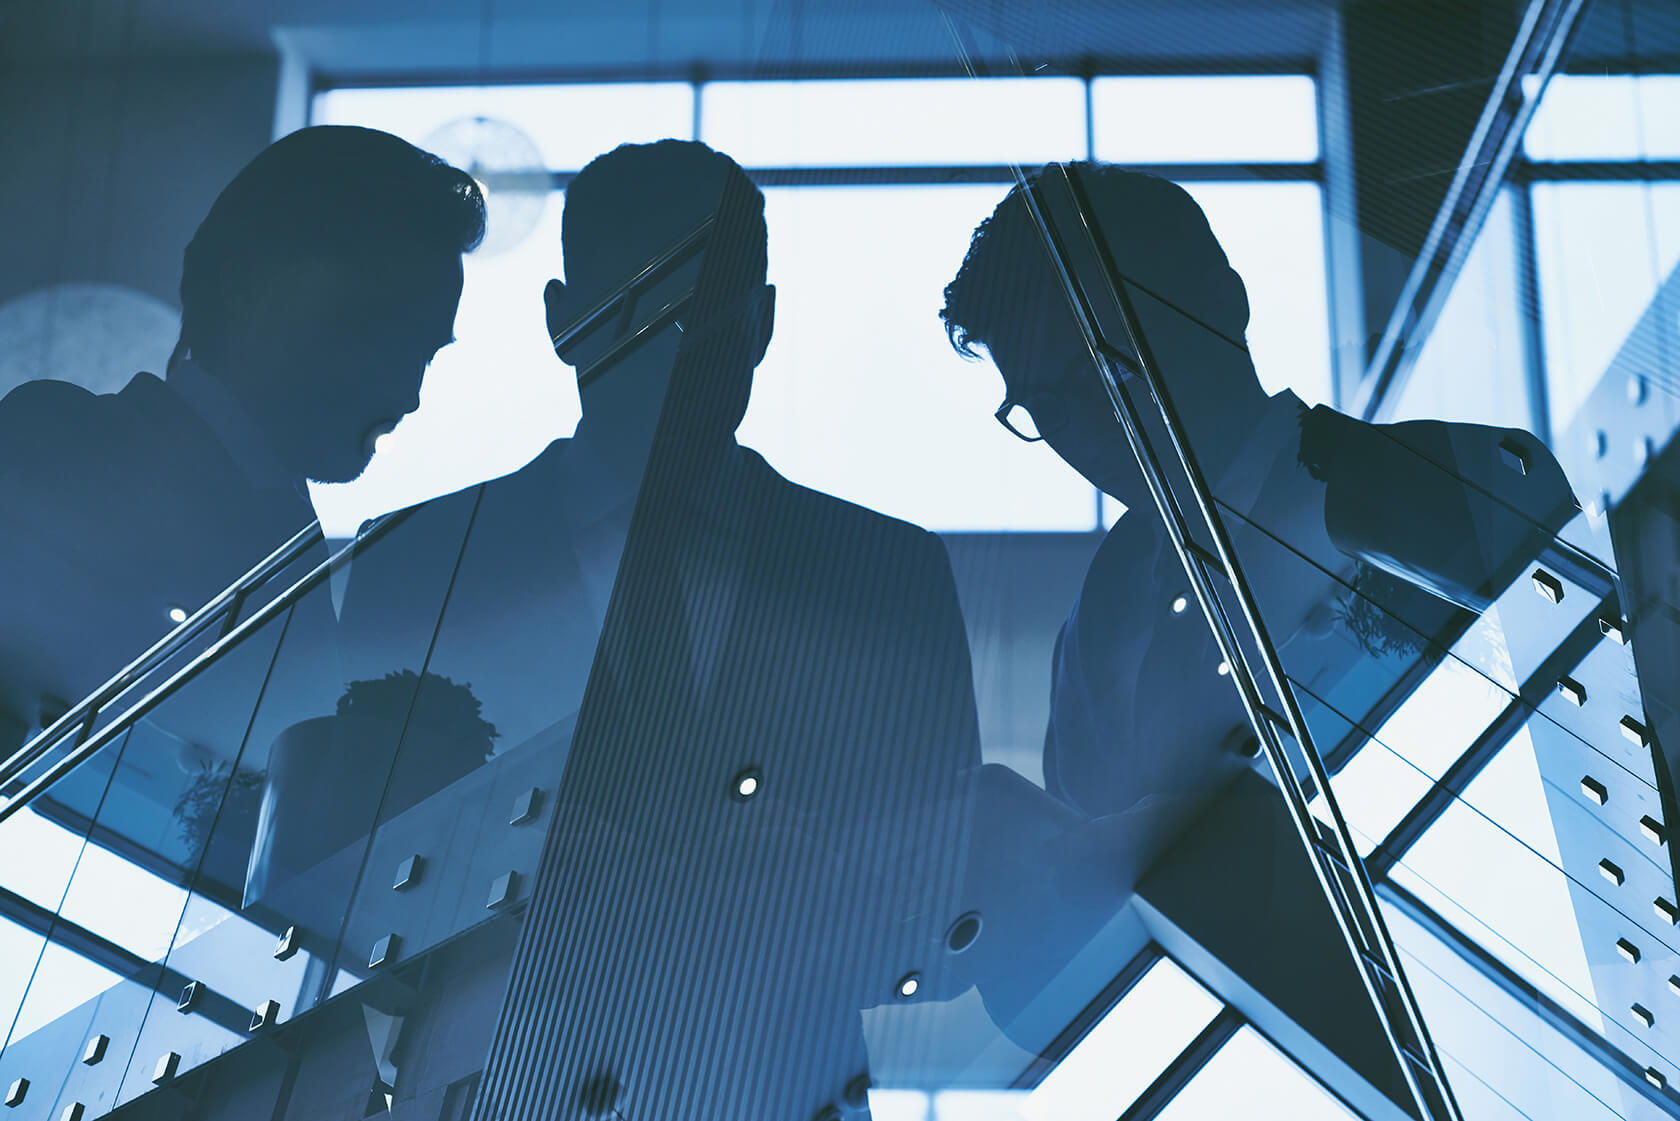 reflection of three men PXDYH771